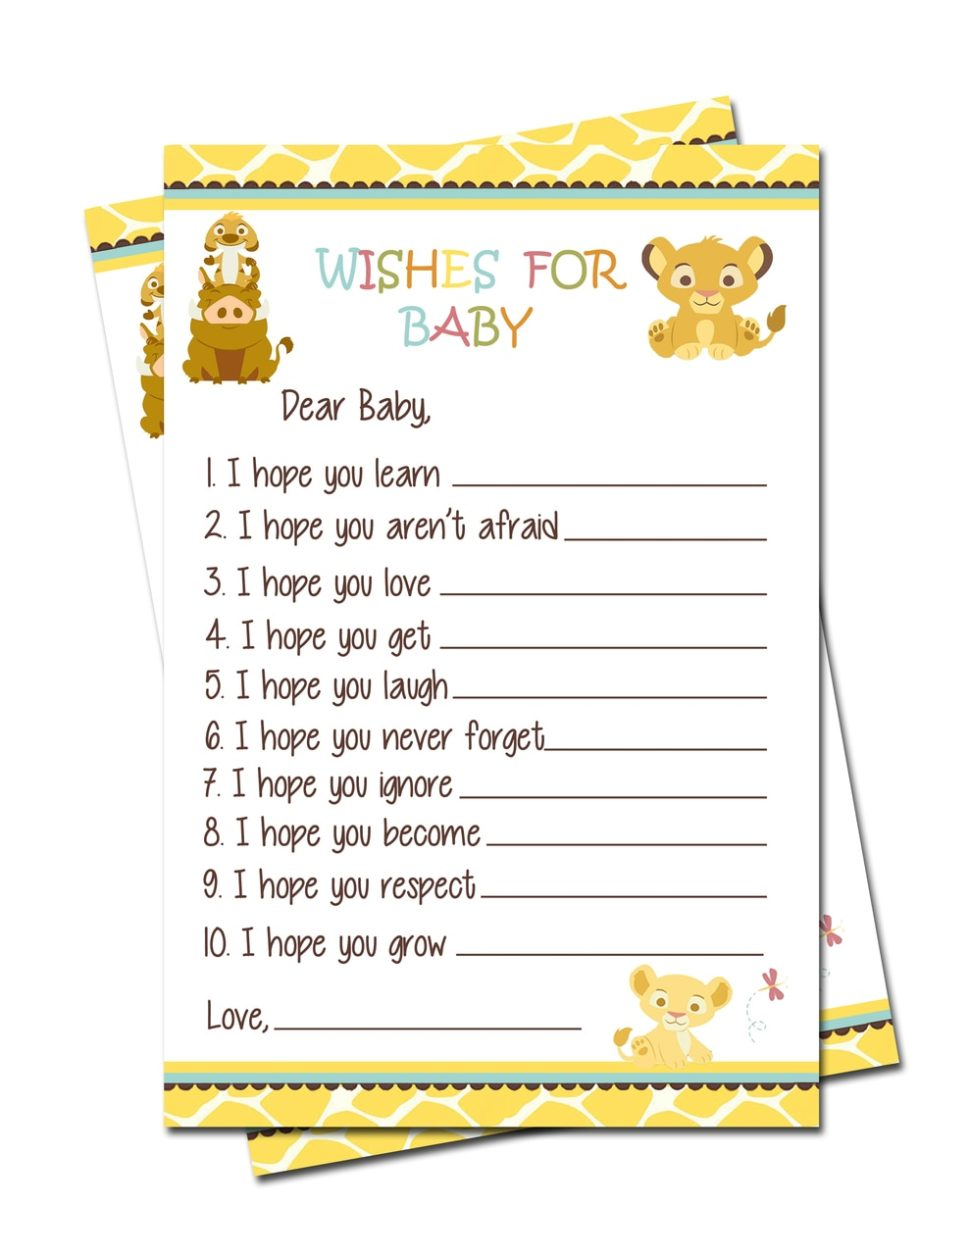 Medium Size of Baby Shower:stylish Baby Shower Wishes Picture Inspirations Baby Shower Wishes Simba Lion King Baby Shower Wishes For Baby Games